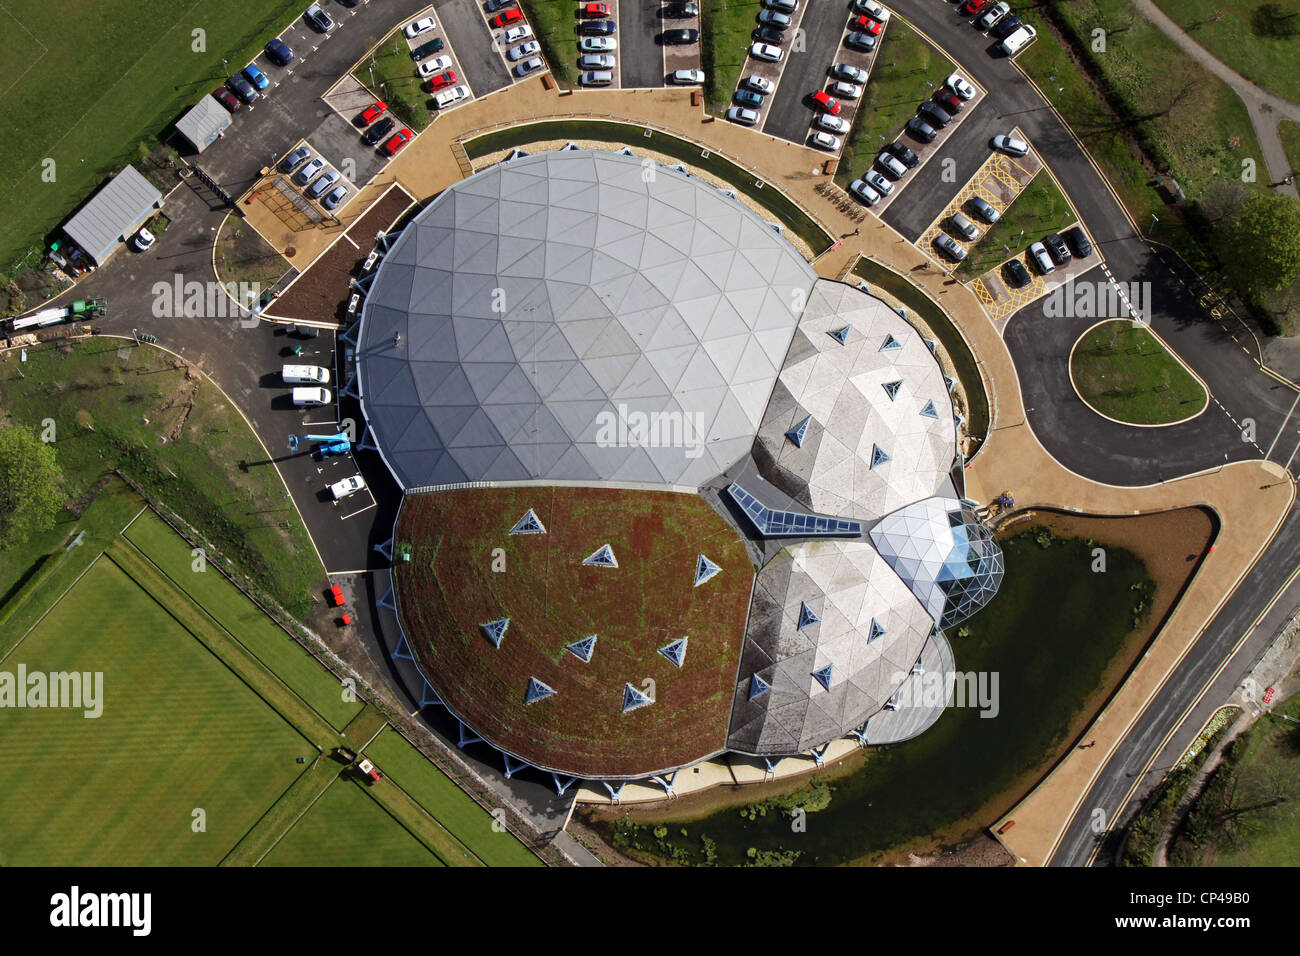 Aerial view of The Pods leisure centre, Scunthorpe - Stock Image